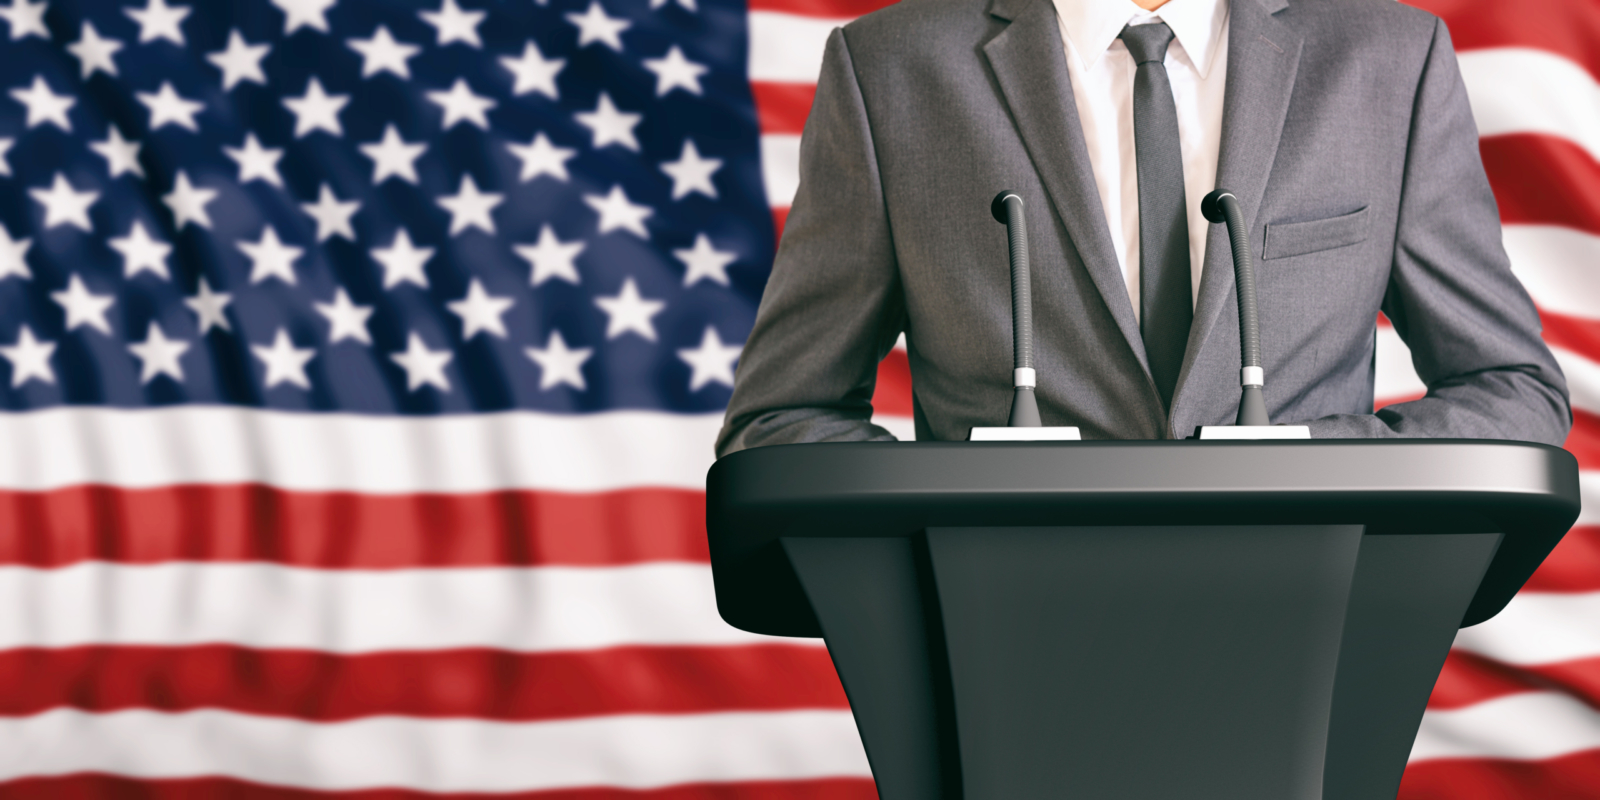 Guy standing in front of podium with American Flag in the background